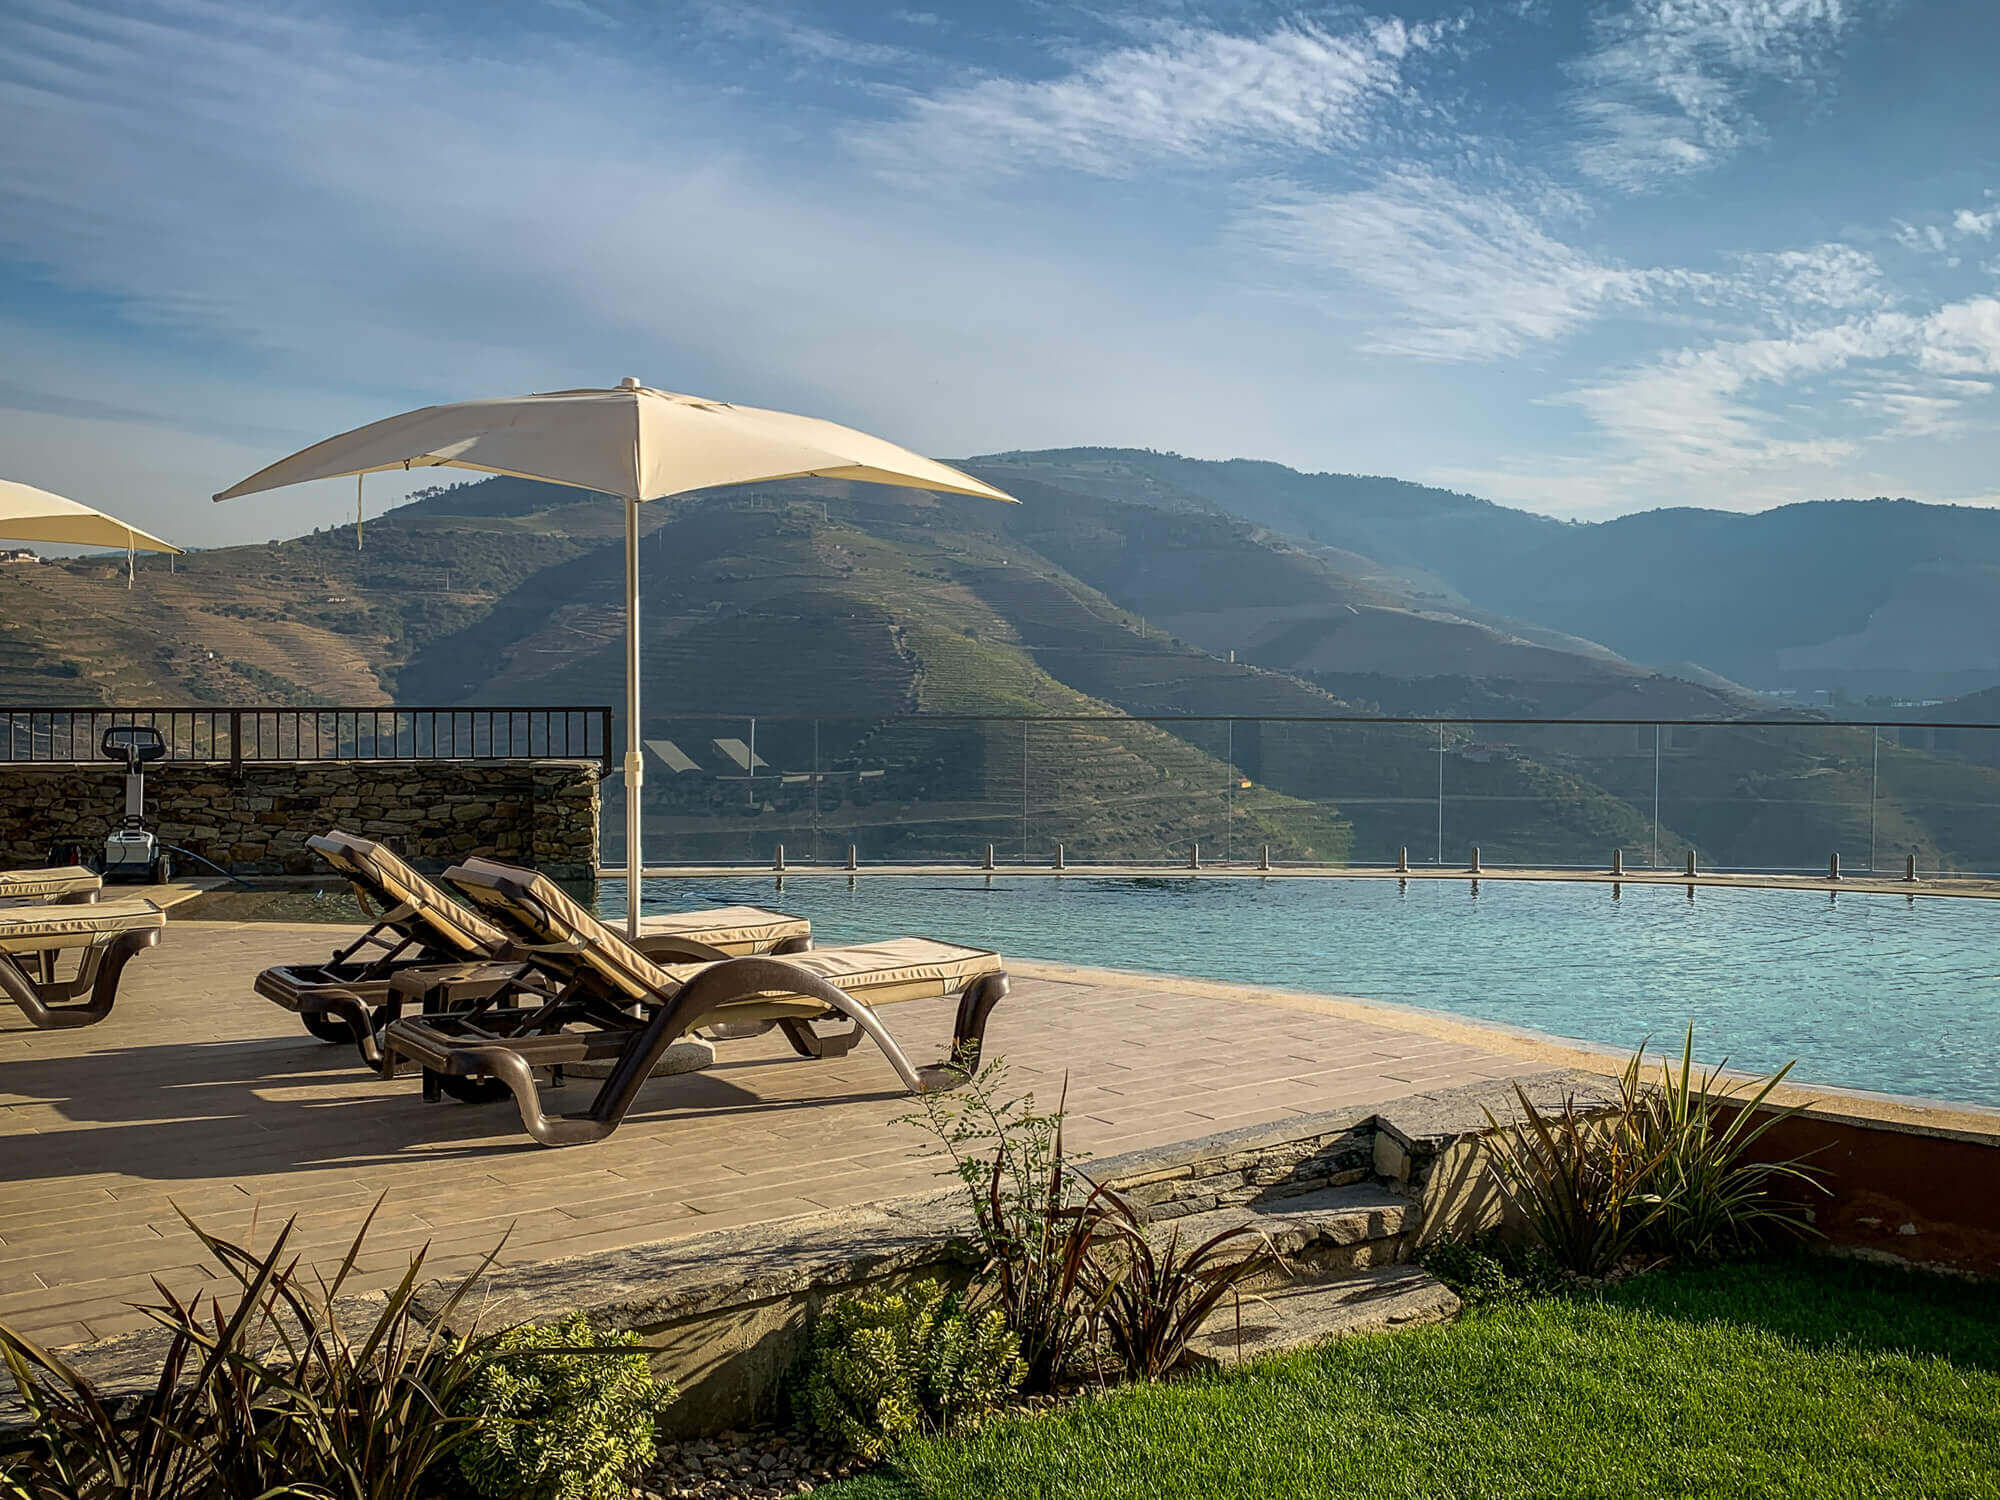 Vila Gale Douro pool view